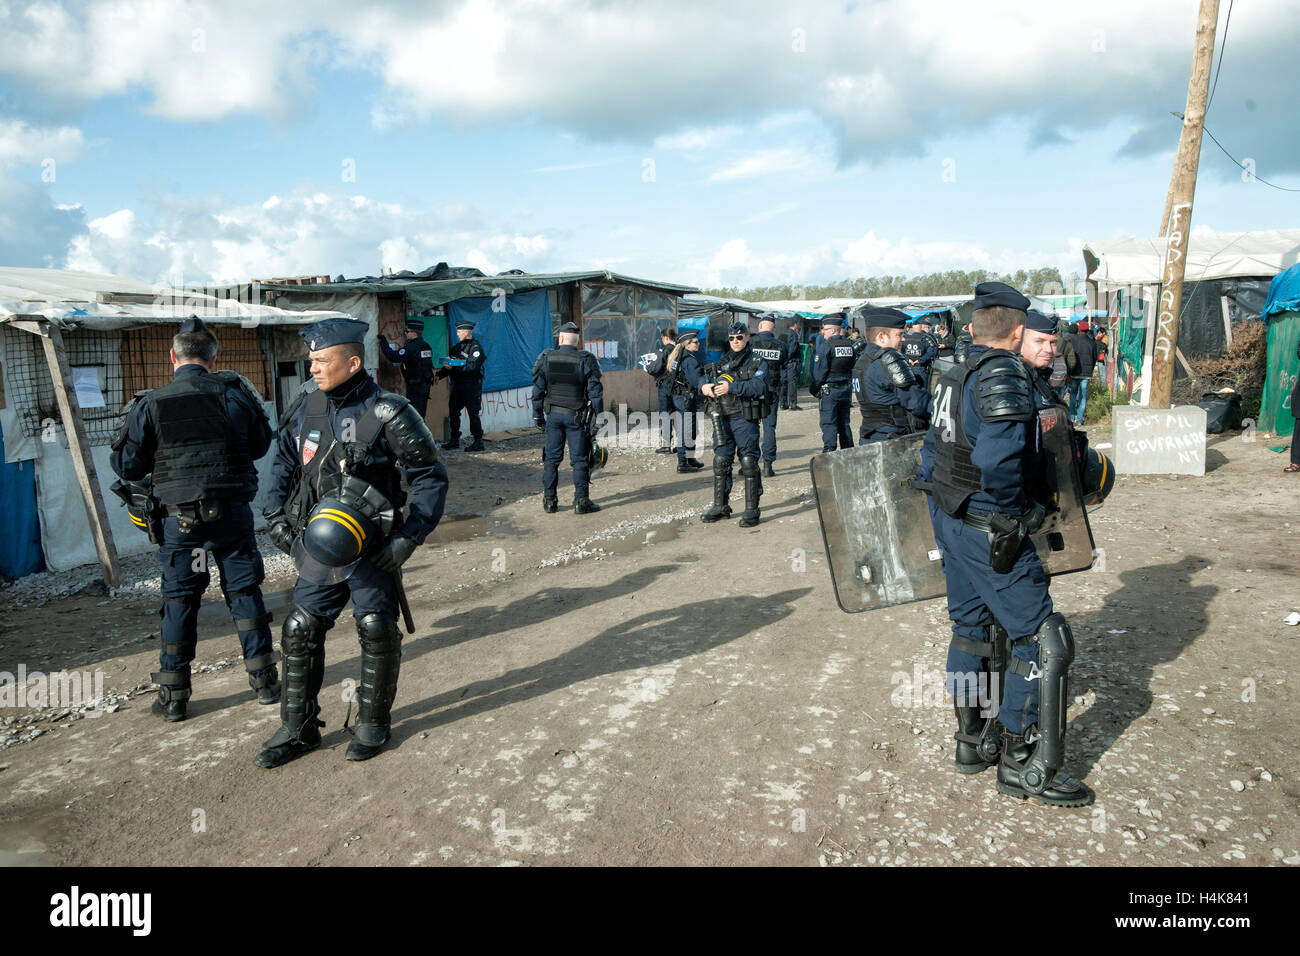 French police demolished the camp of migrants in Paris 85